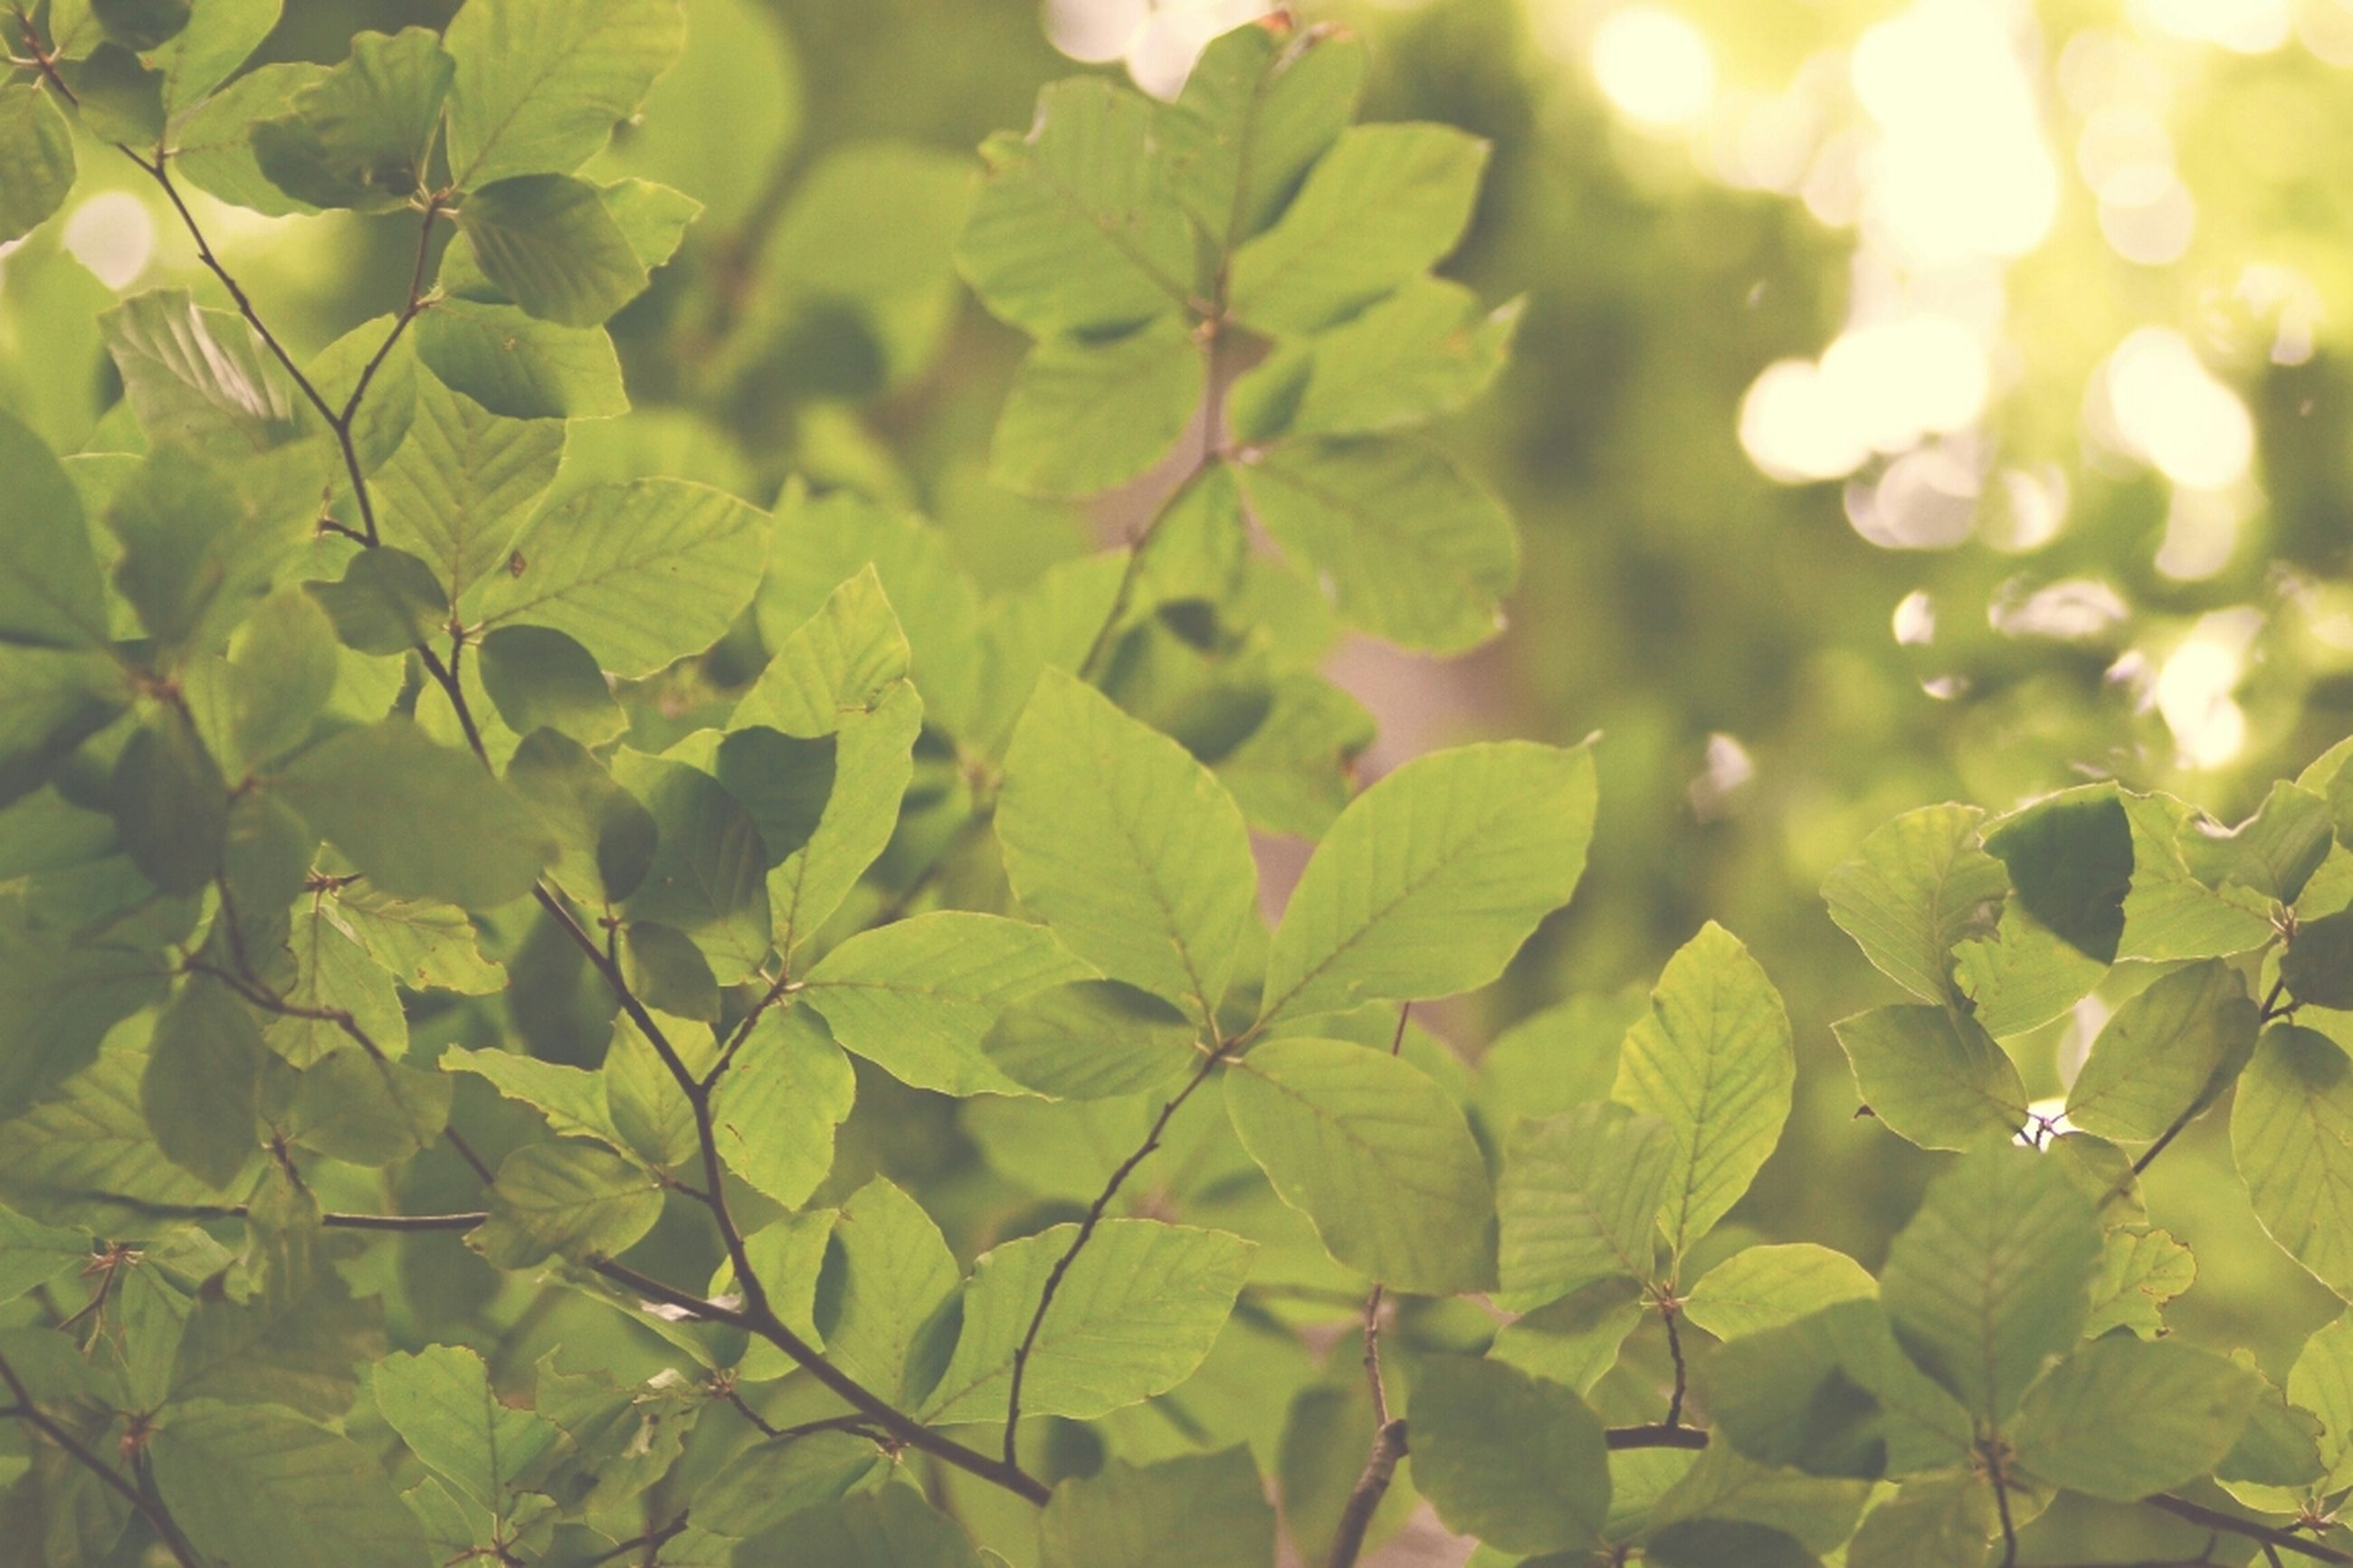 leaf, growth, green color, branch, nature, tree, close-up, focus on foreground, plant, full frame, beauty in nature, backgrounds, tranquility, leaves, day, outdoors, no people, sunlight, selective focus, forest